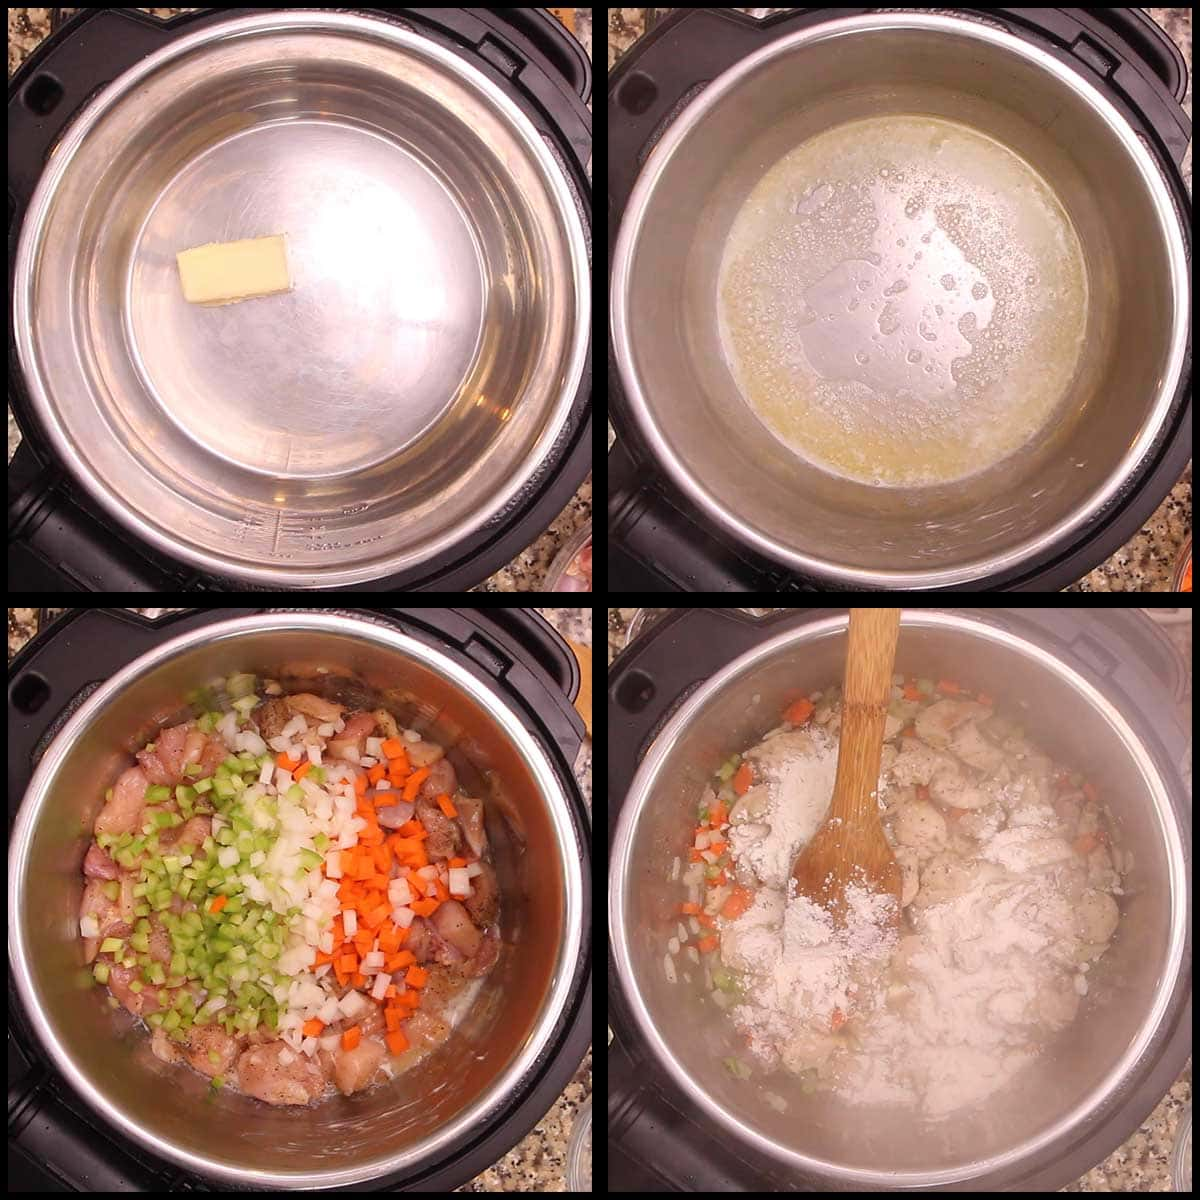 sauteing chicken and vegetables for slow cooker chicken stew